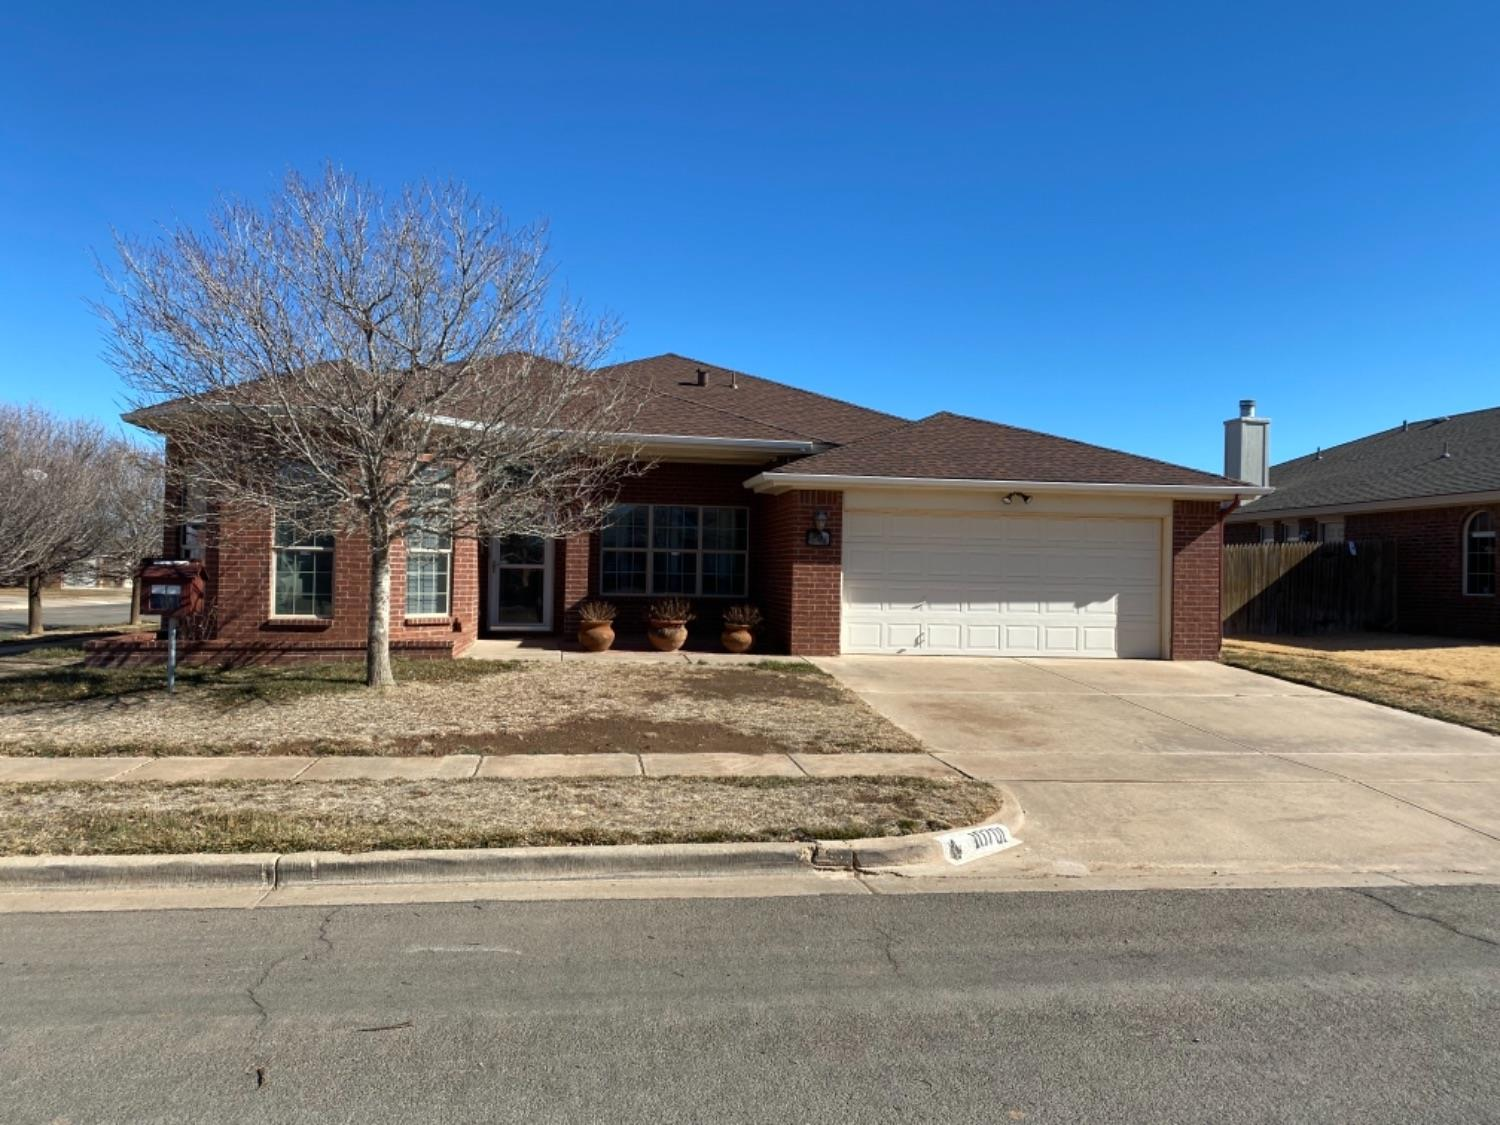 This one owner custom home built in 2005 has everything you need and is conveniently located in the Cooper ISD School District.  It's in a prime location that is close to shopping, dining and fun.  The home features 4 bedrooms, 2 1/2 baths and a finished basement with an entire wall of built-ins. A really neat feature is the registered Little Free Library book-sharing box in the front yard. This home has a nice flow with an isolated master suite. The oversized master bedroom has two walk-in closets.  You will be hard pressed to find a home this size in this neighborhood. Oh and did I mention there are two living areas?  The kitchen opens to the living room, has two pantry areas and island and lots of storage.   Several doorways are extra-wide making it handicap accessible.  This home is a must see! Listing agent is related to the seller.